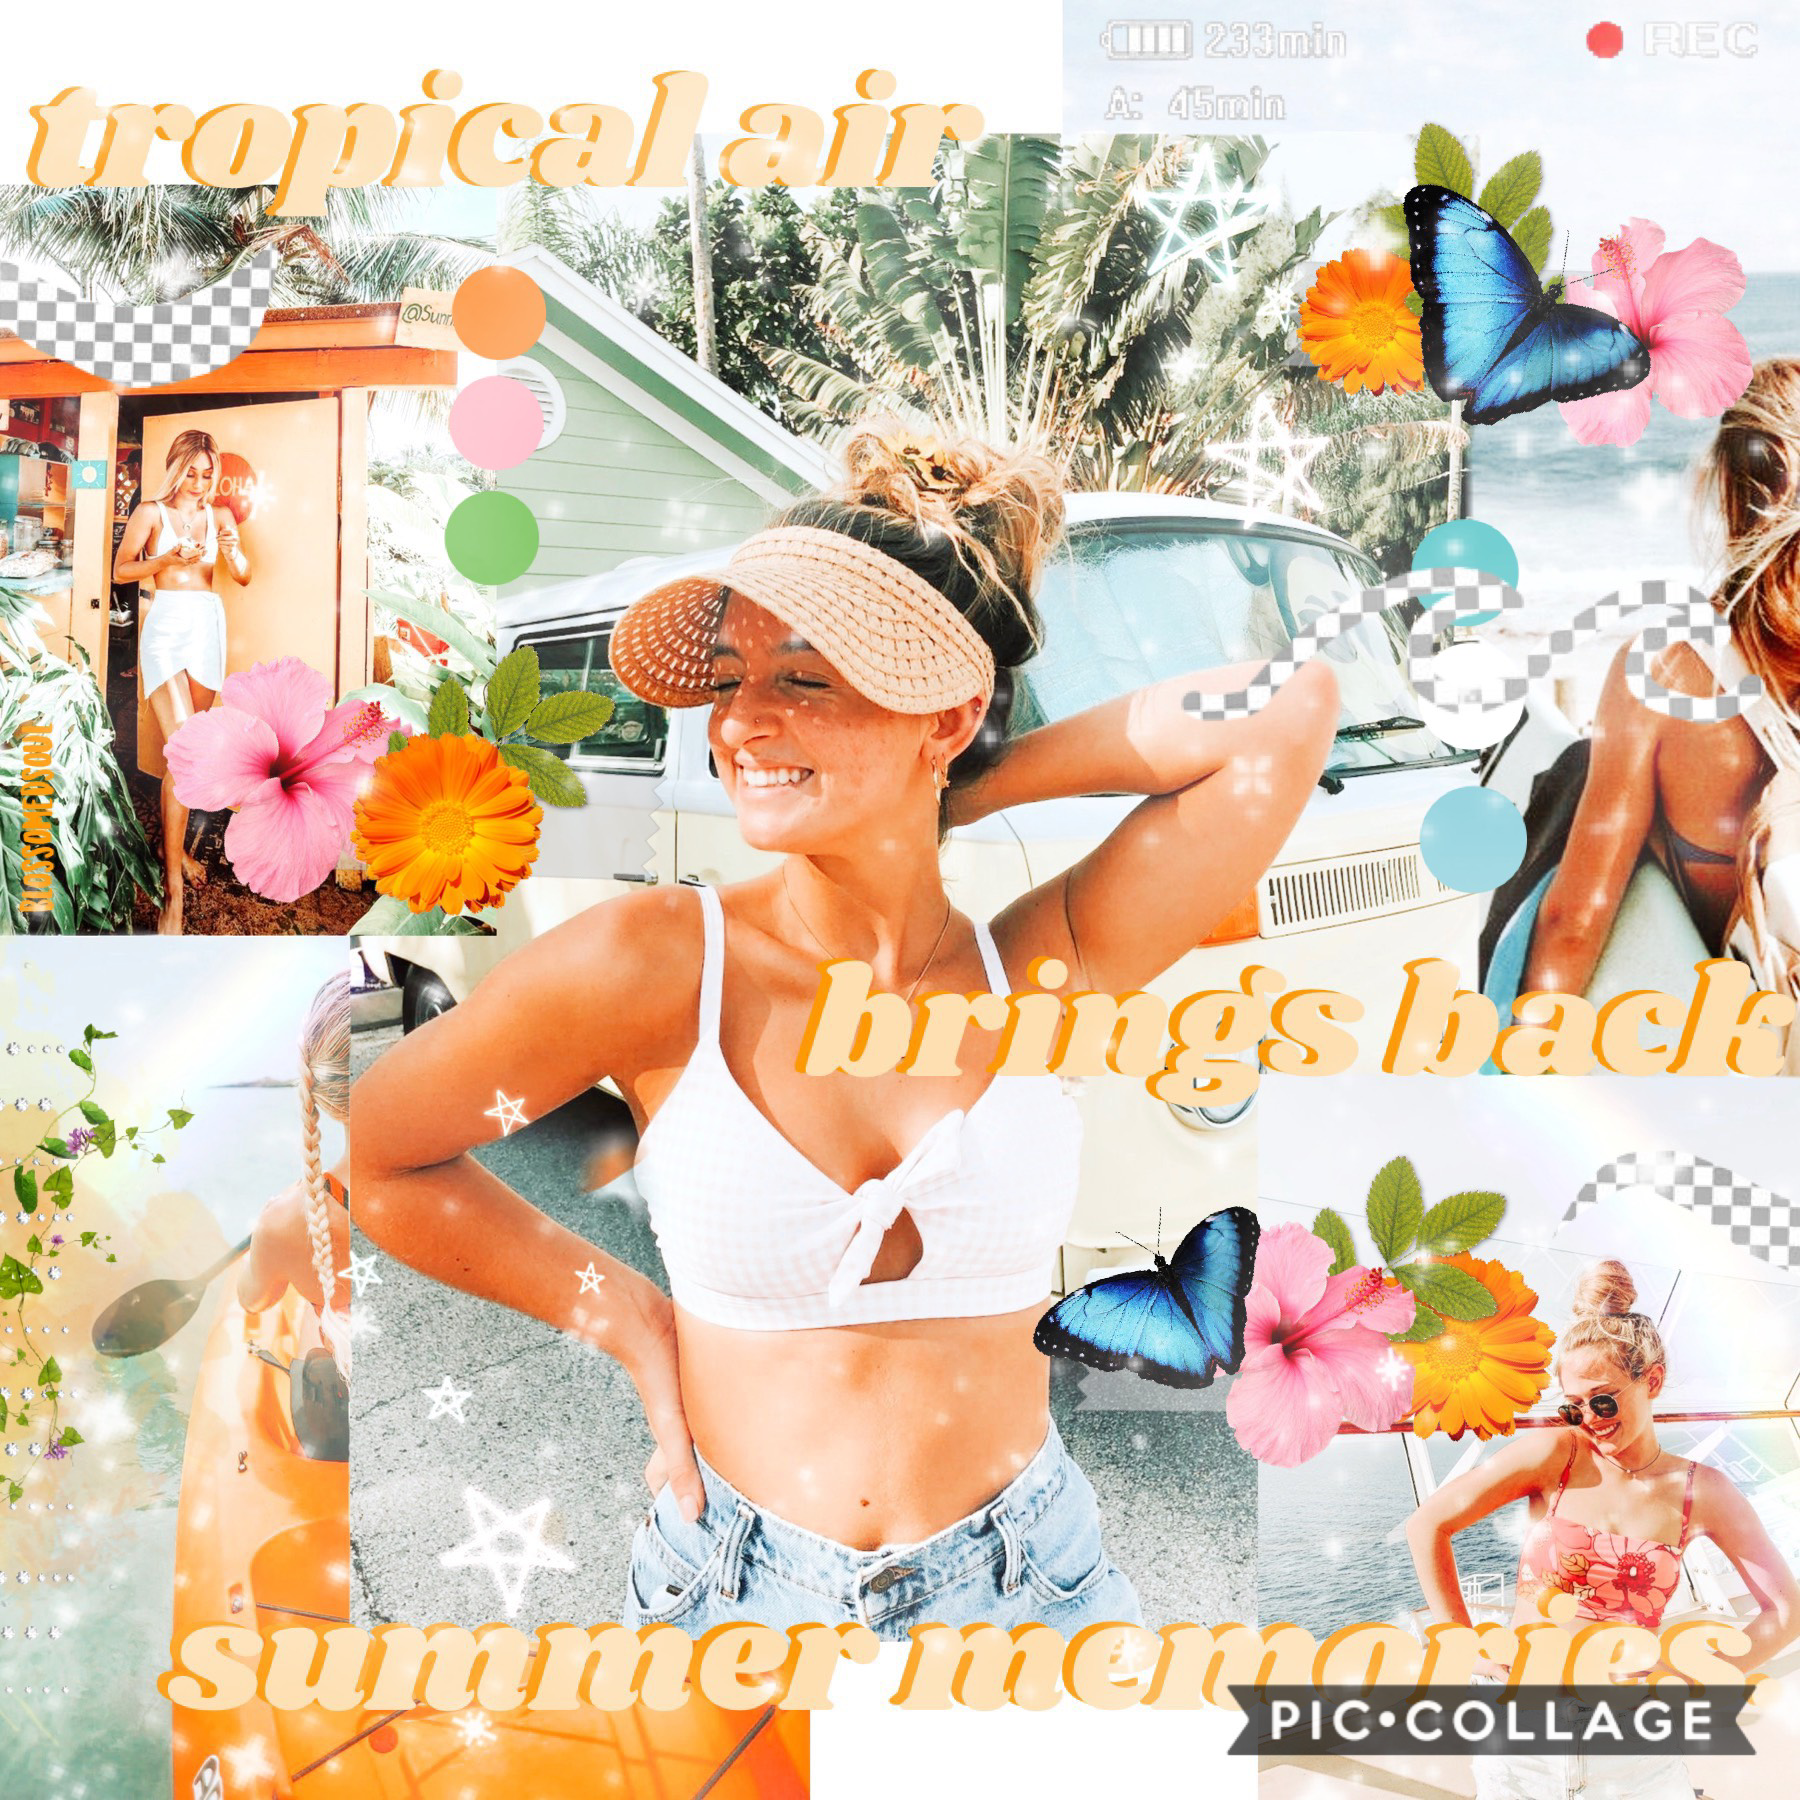 [ t a p ]   entry to a games :) how are you all doing? summer is almost over for me and i still have some reading to do 😅🧡 i figured i might as well post this bc it goes with my account theme 🍃💓 still kinda low on ideas though but hope this post is okay 🦋